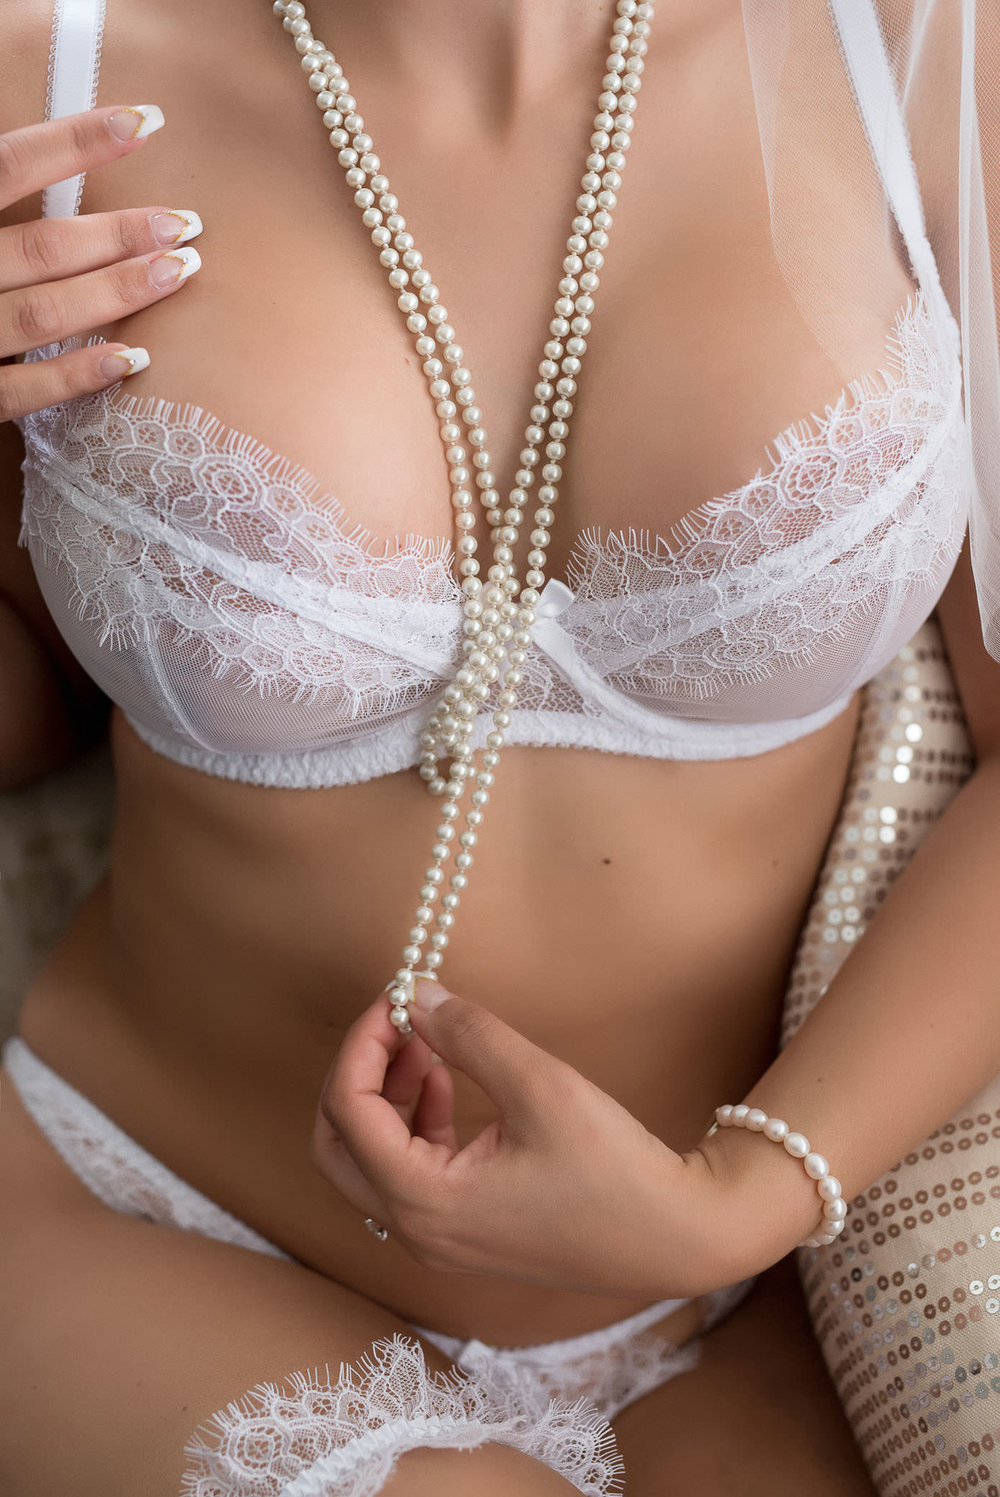 Wedding lingerie with veil & pearls